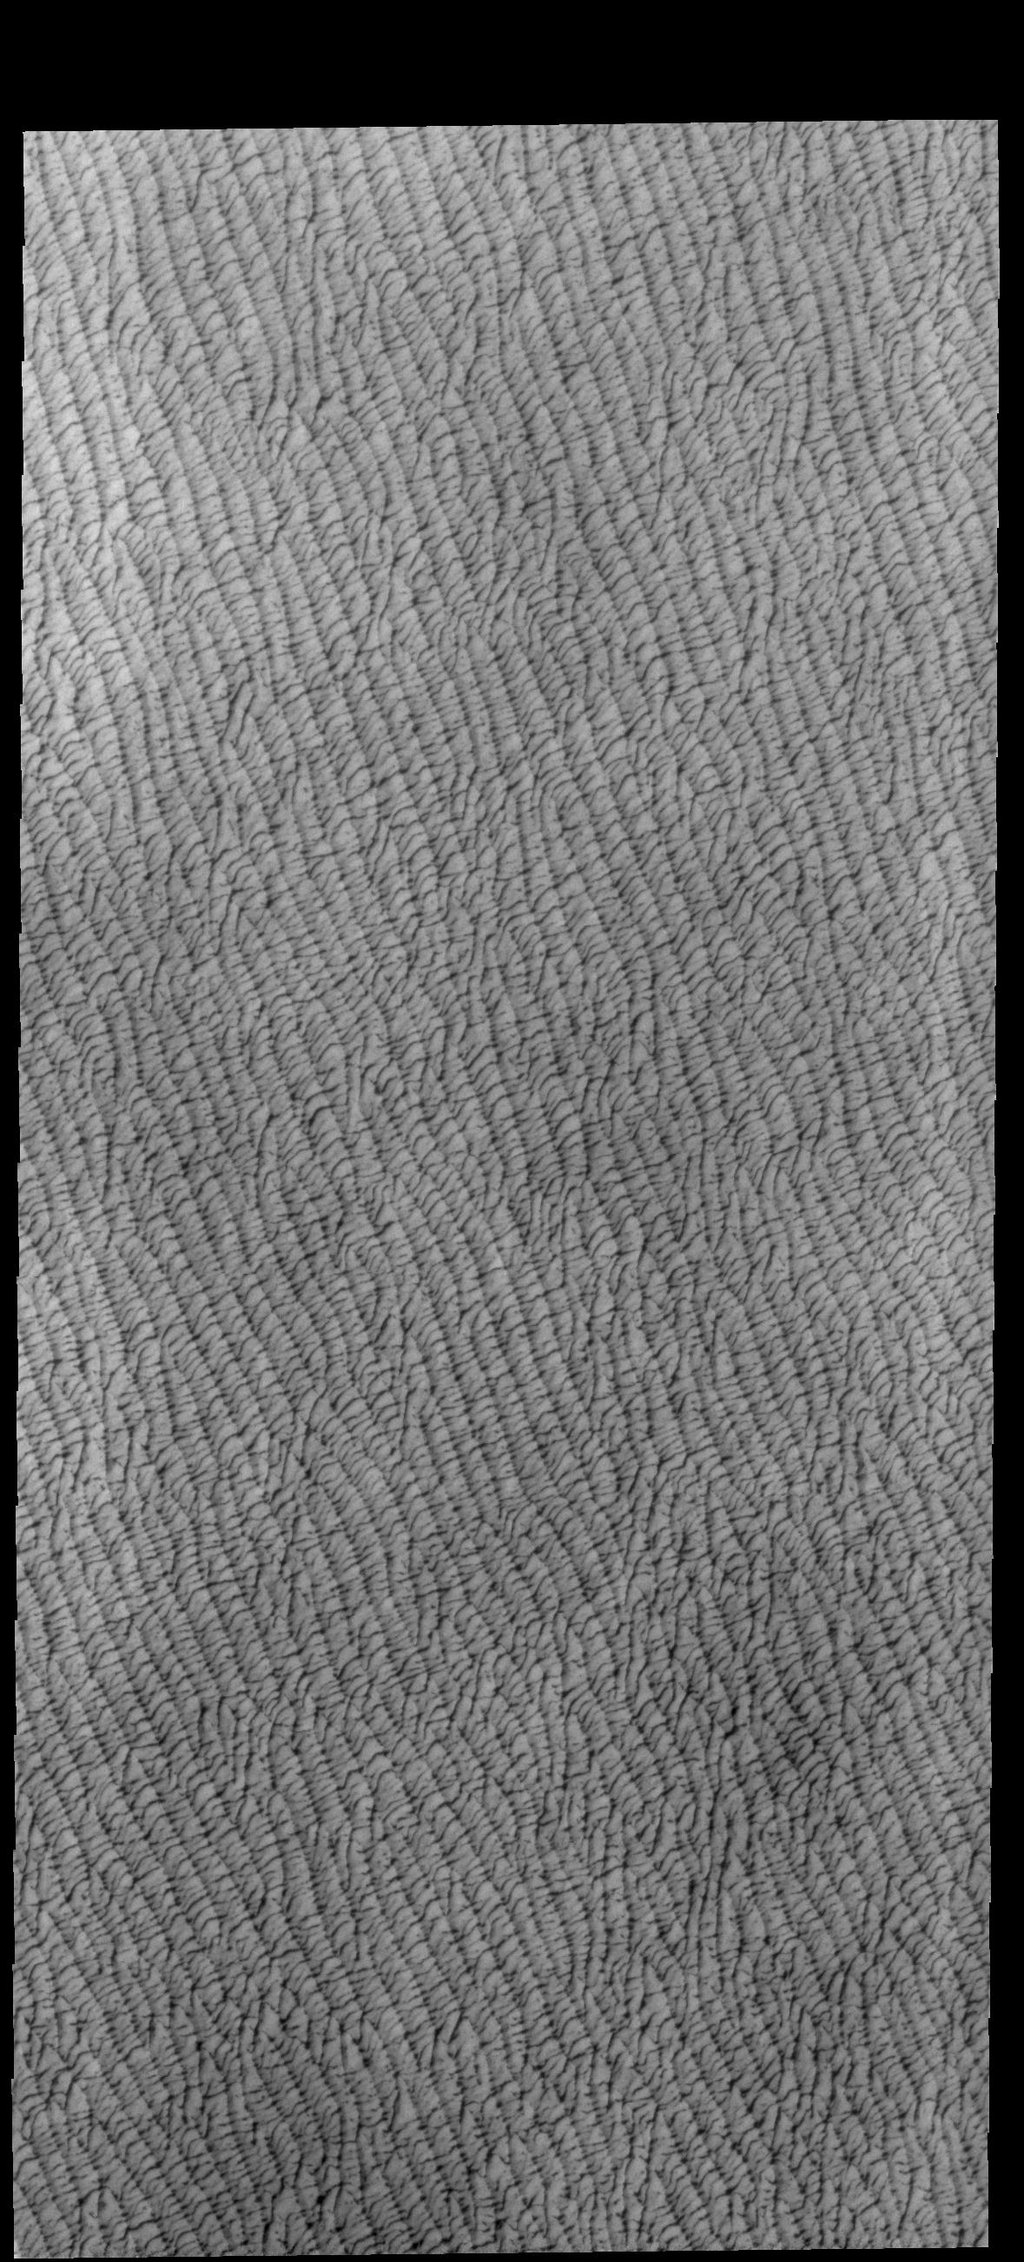 This image from NASA's Mars Odyssey shows a portion of Olympia Undae, a large dune field located near the north pole.